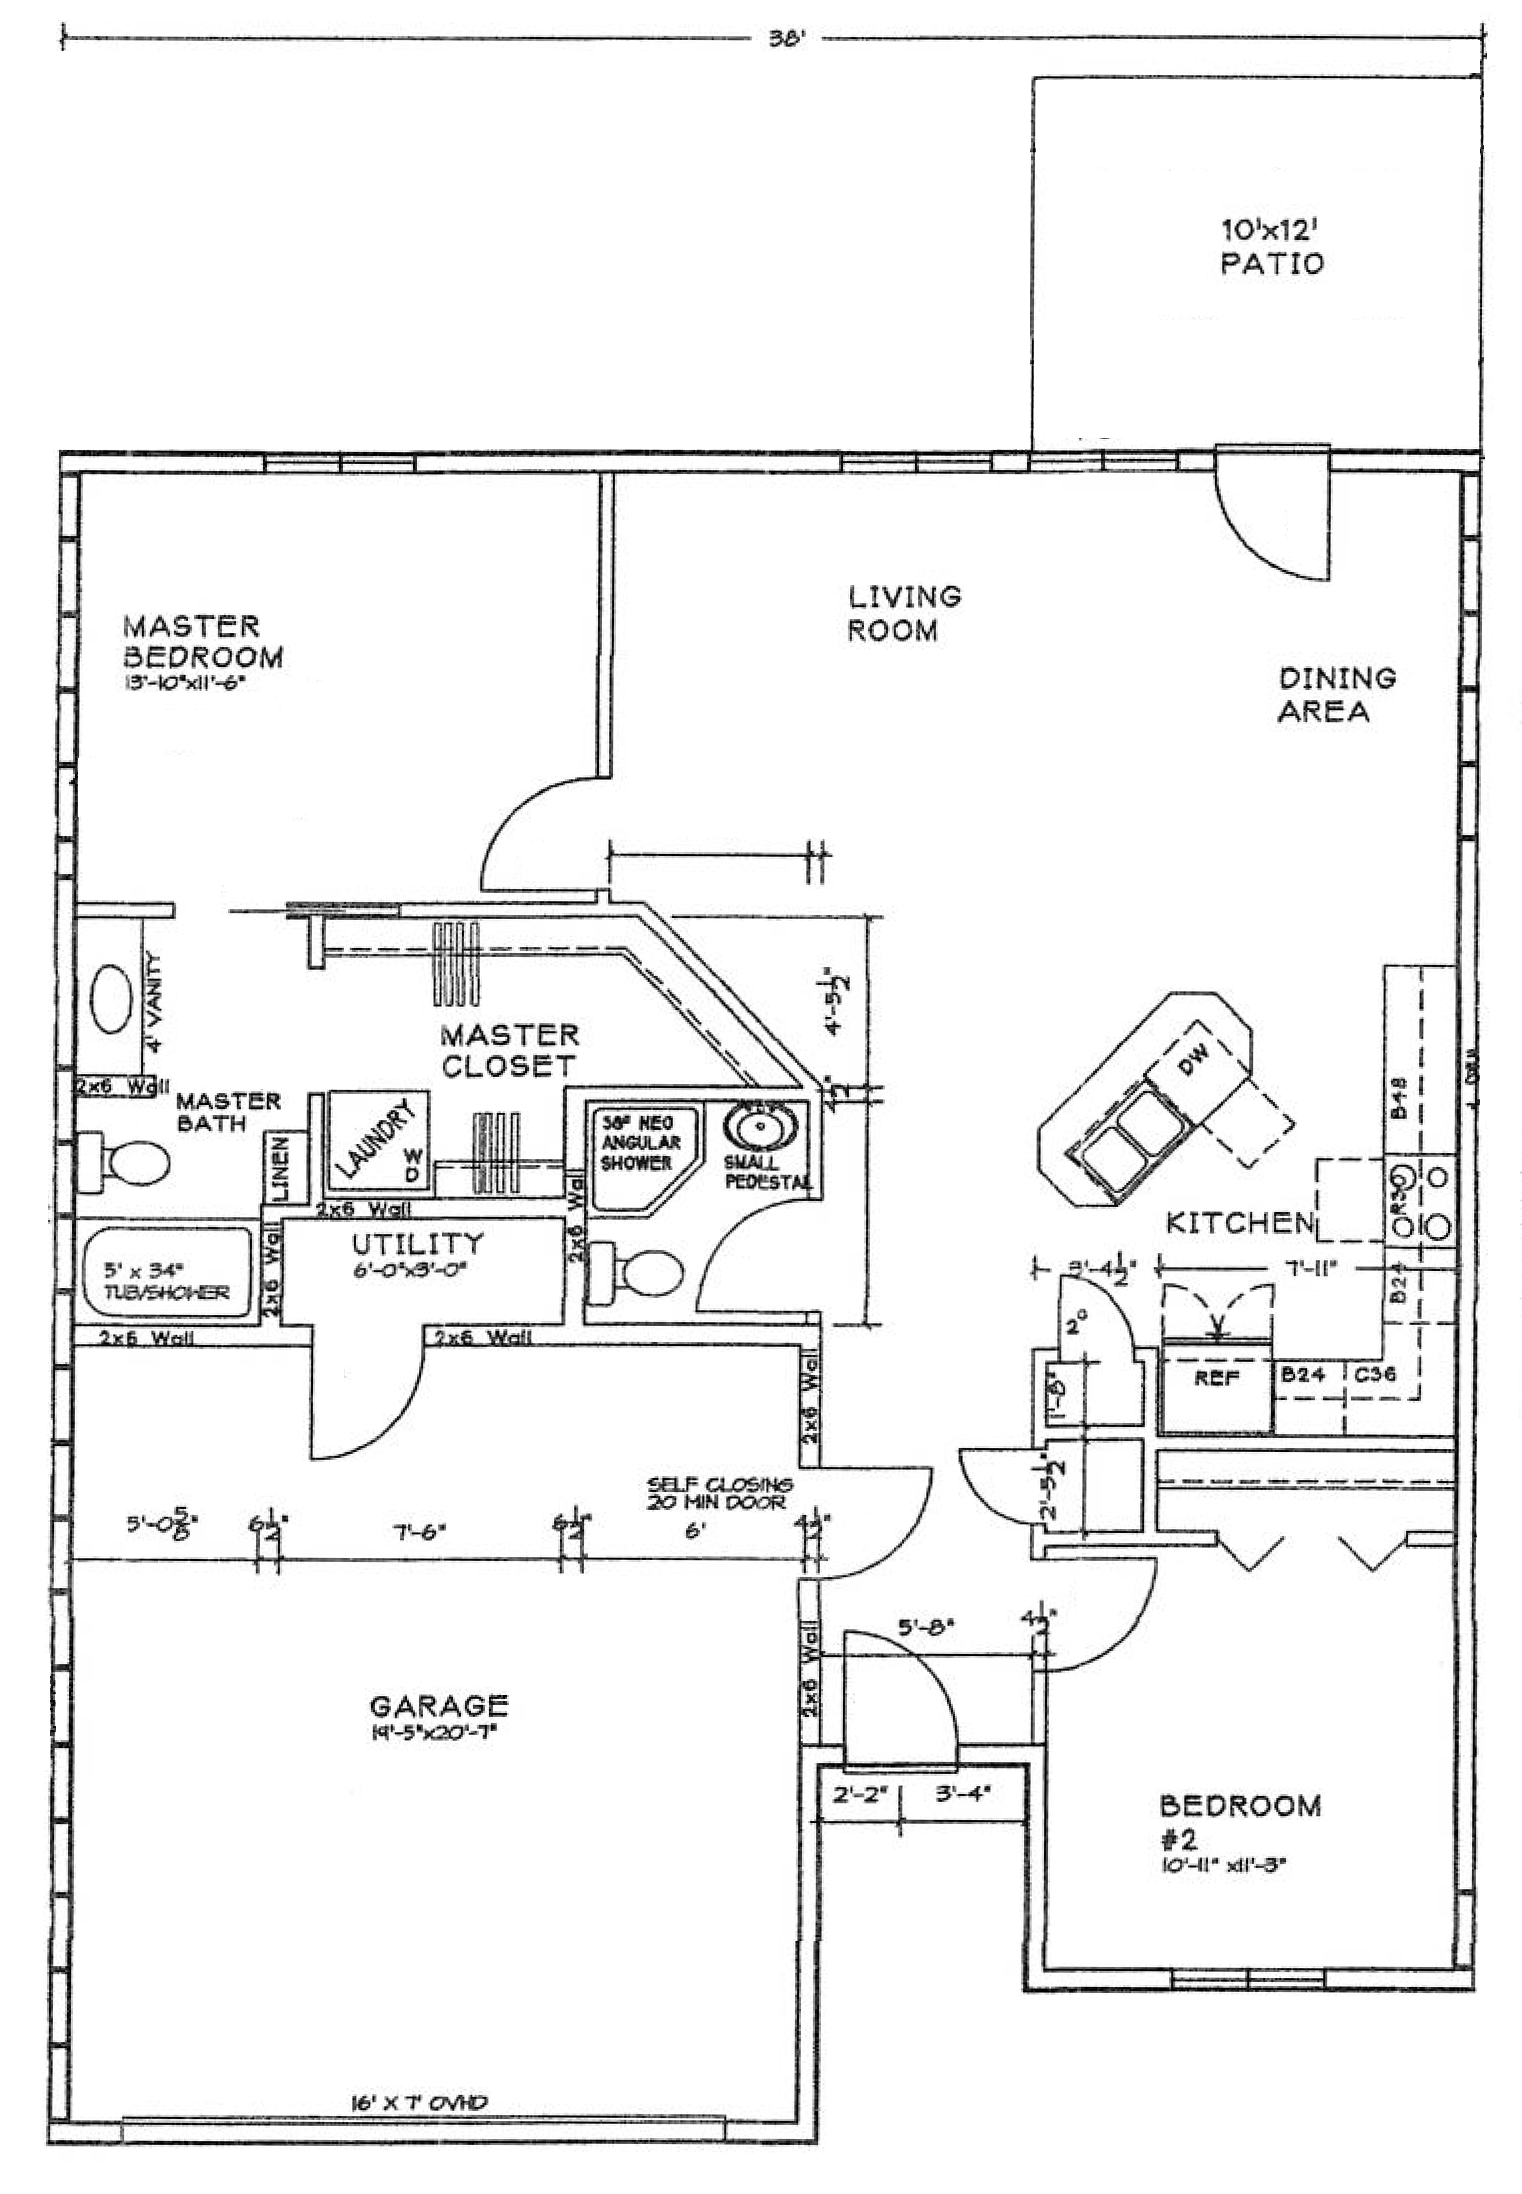 Home north ridge cottages for Floor plan cost estimator